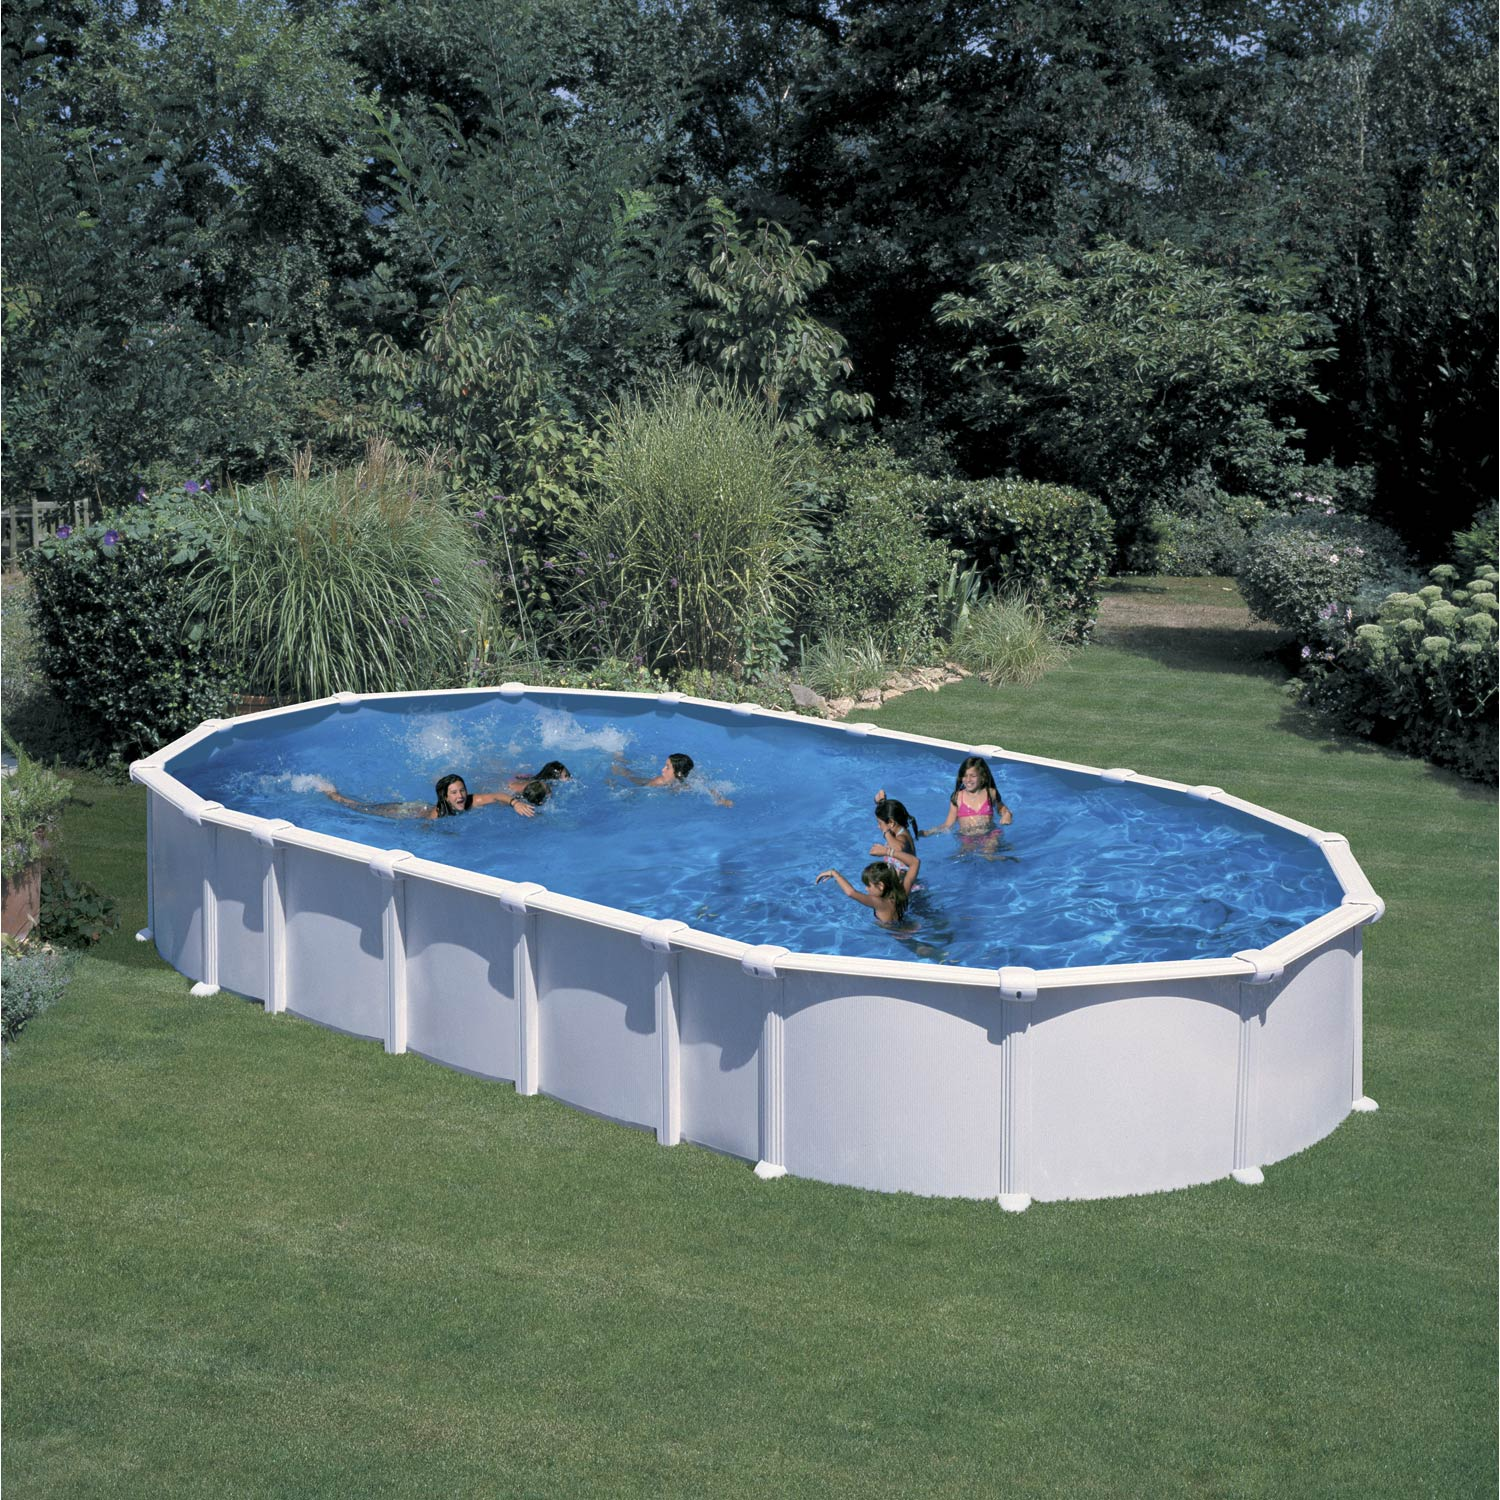 Piscine hors sol acier san clara l 6 4 x l x h for Piscine demontable rectangulaire